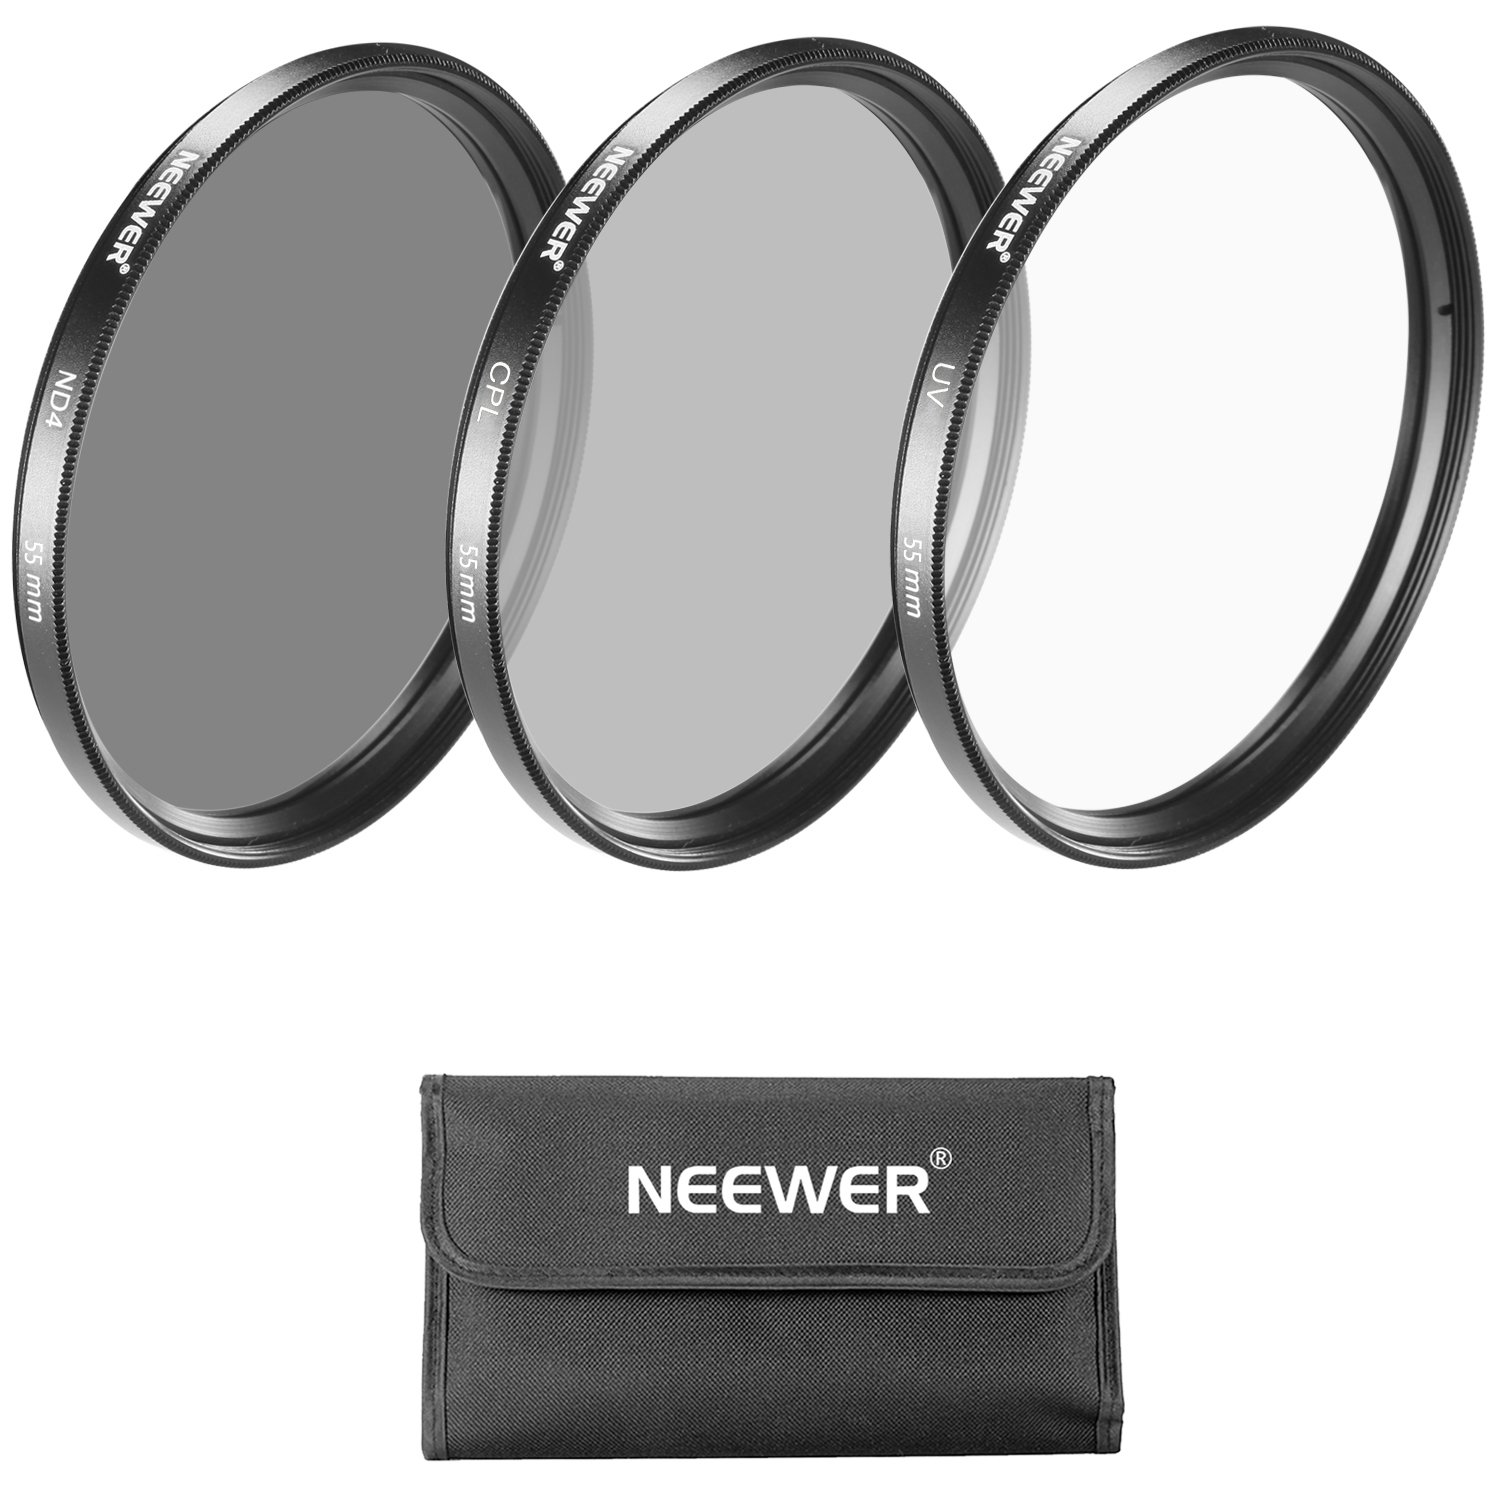 Neewer 55MM Lens Filter Kit: UV Filter + CPL Filter + ND4 Filter + Filter Pouch for Sony Alpha Series DSLR Cameras with 18-55mm, 75-300mm f/4.5-5.6, 50mm f/1.4 Lenses